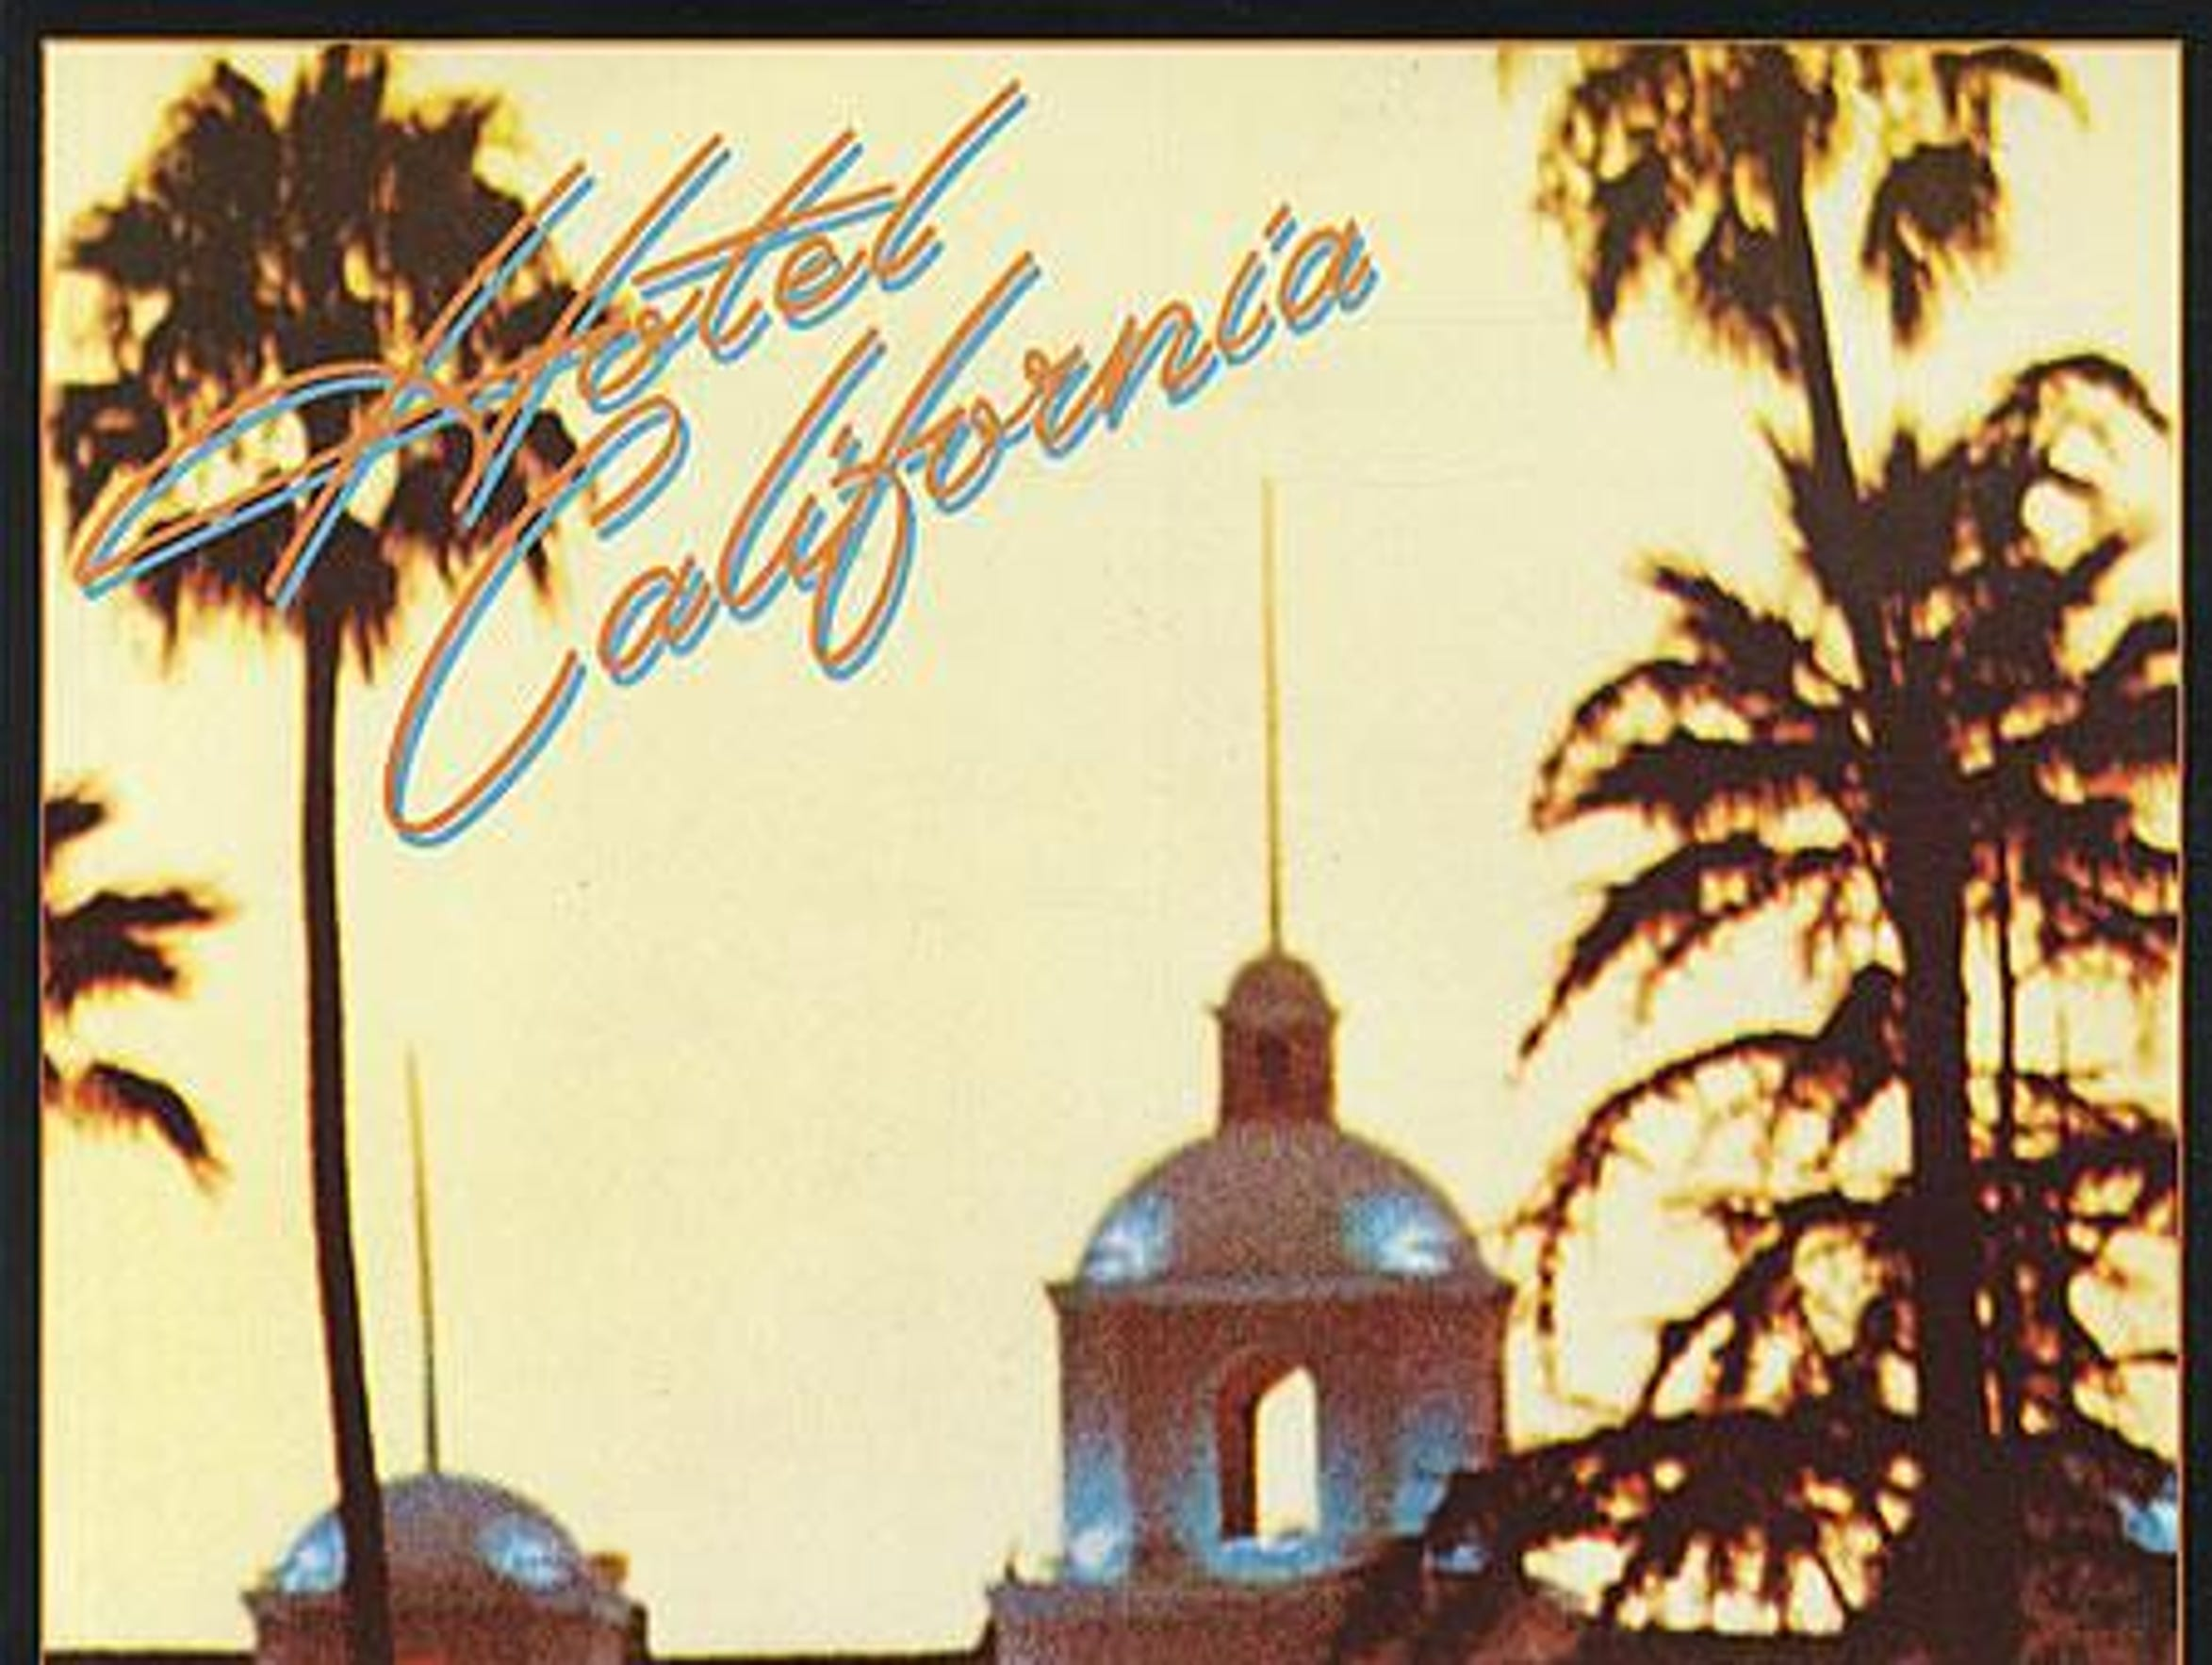 13 of the eagles 39 most enduring lyrics for Hotel california